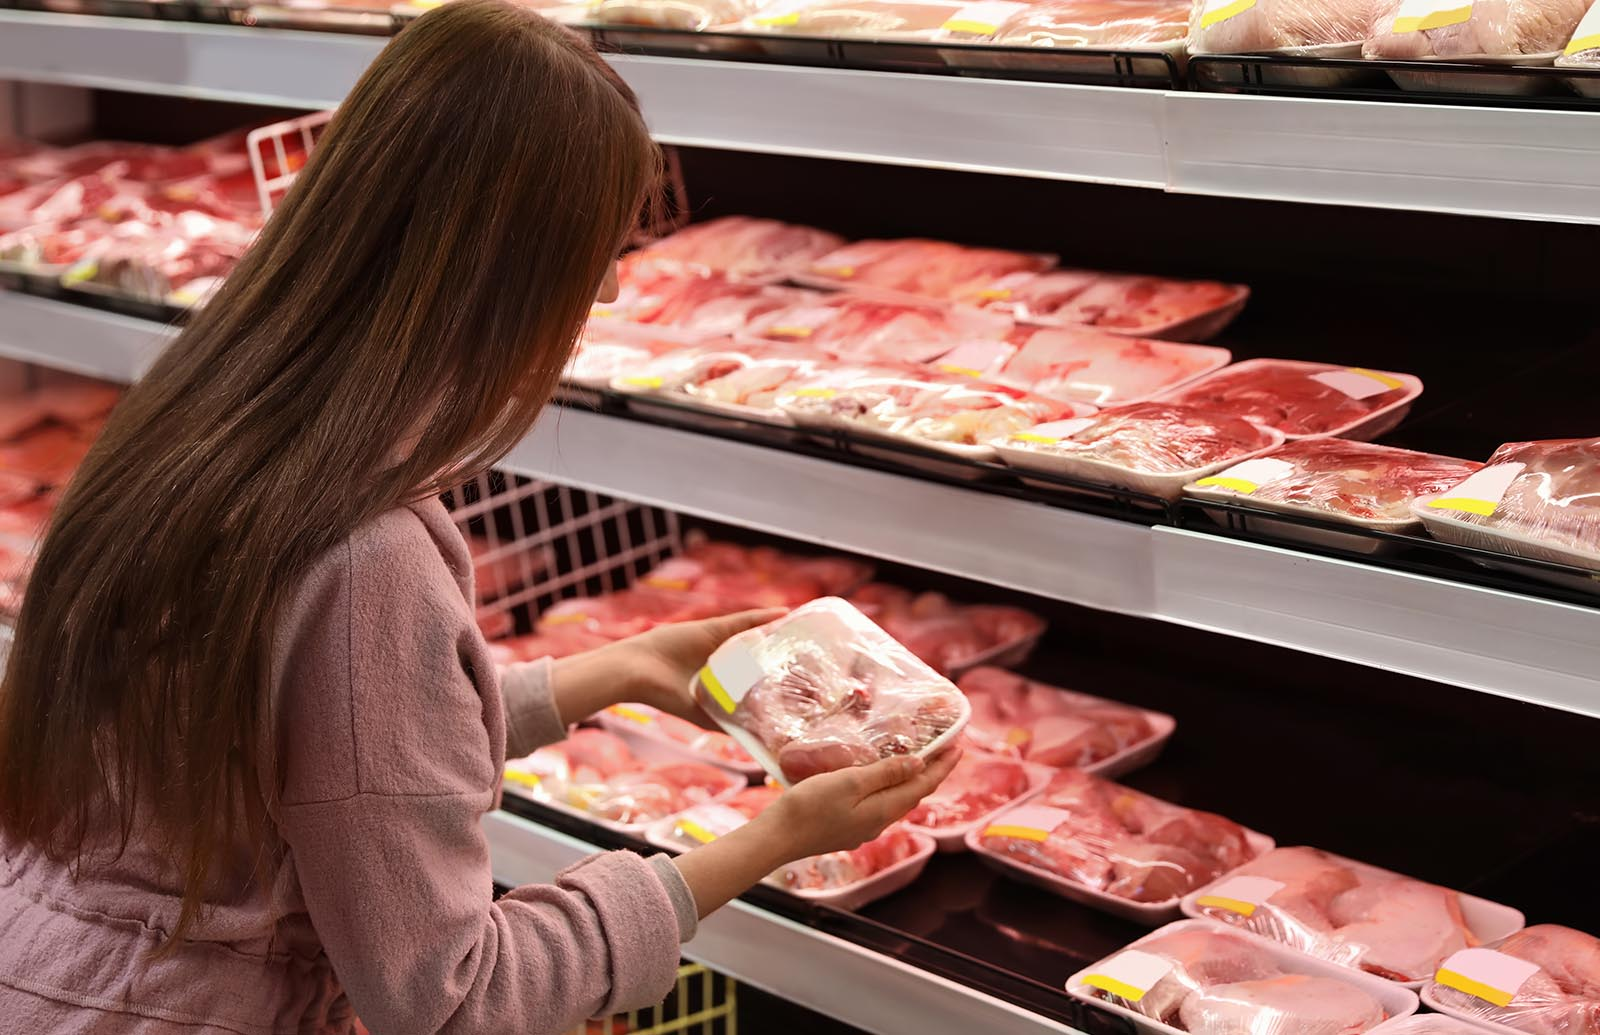 Walmart is going through shortages of those 5 important groceries thumbnail